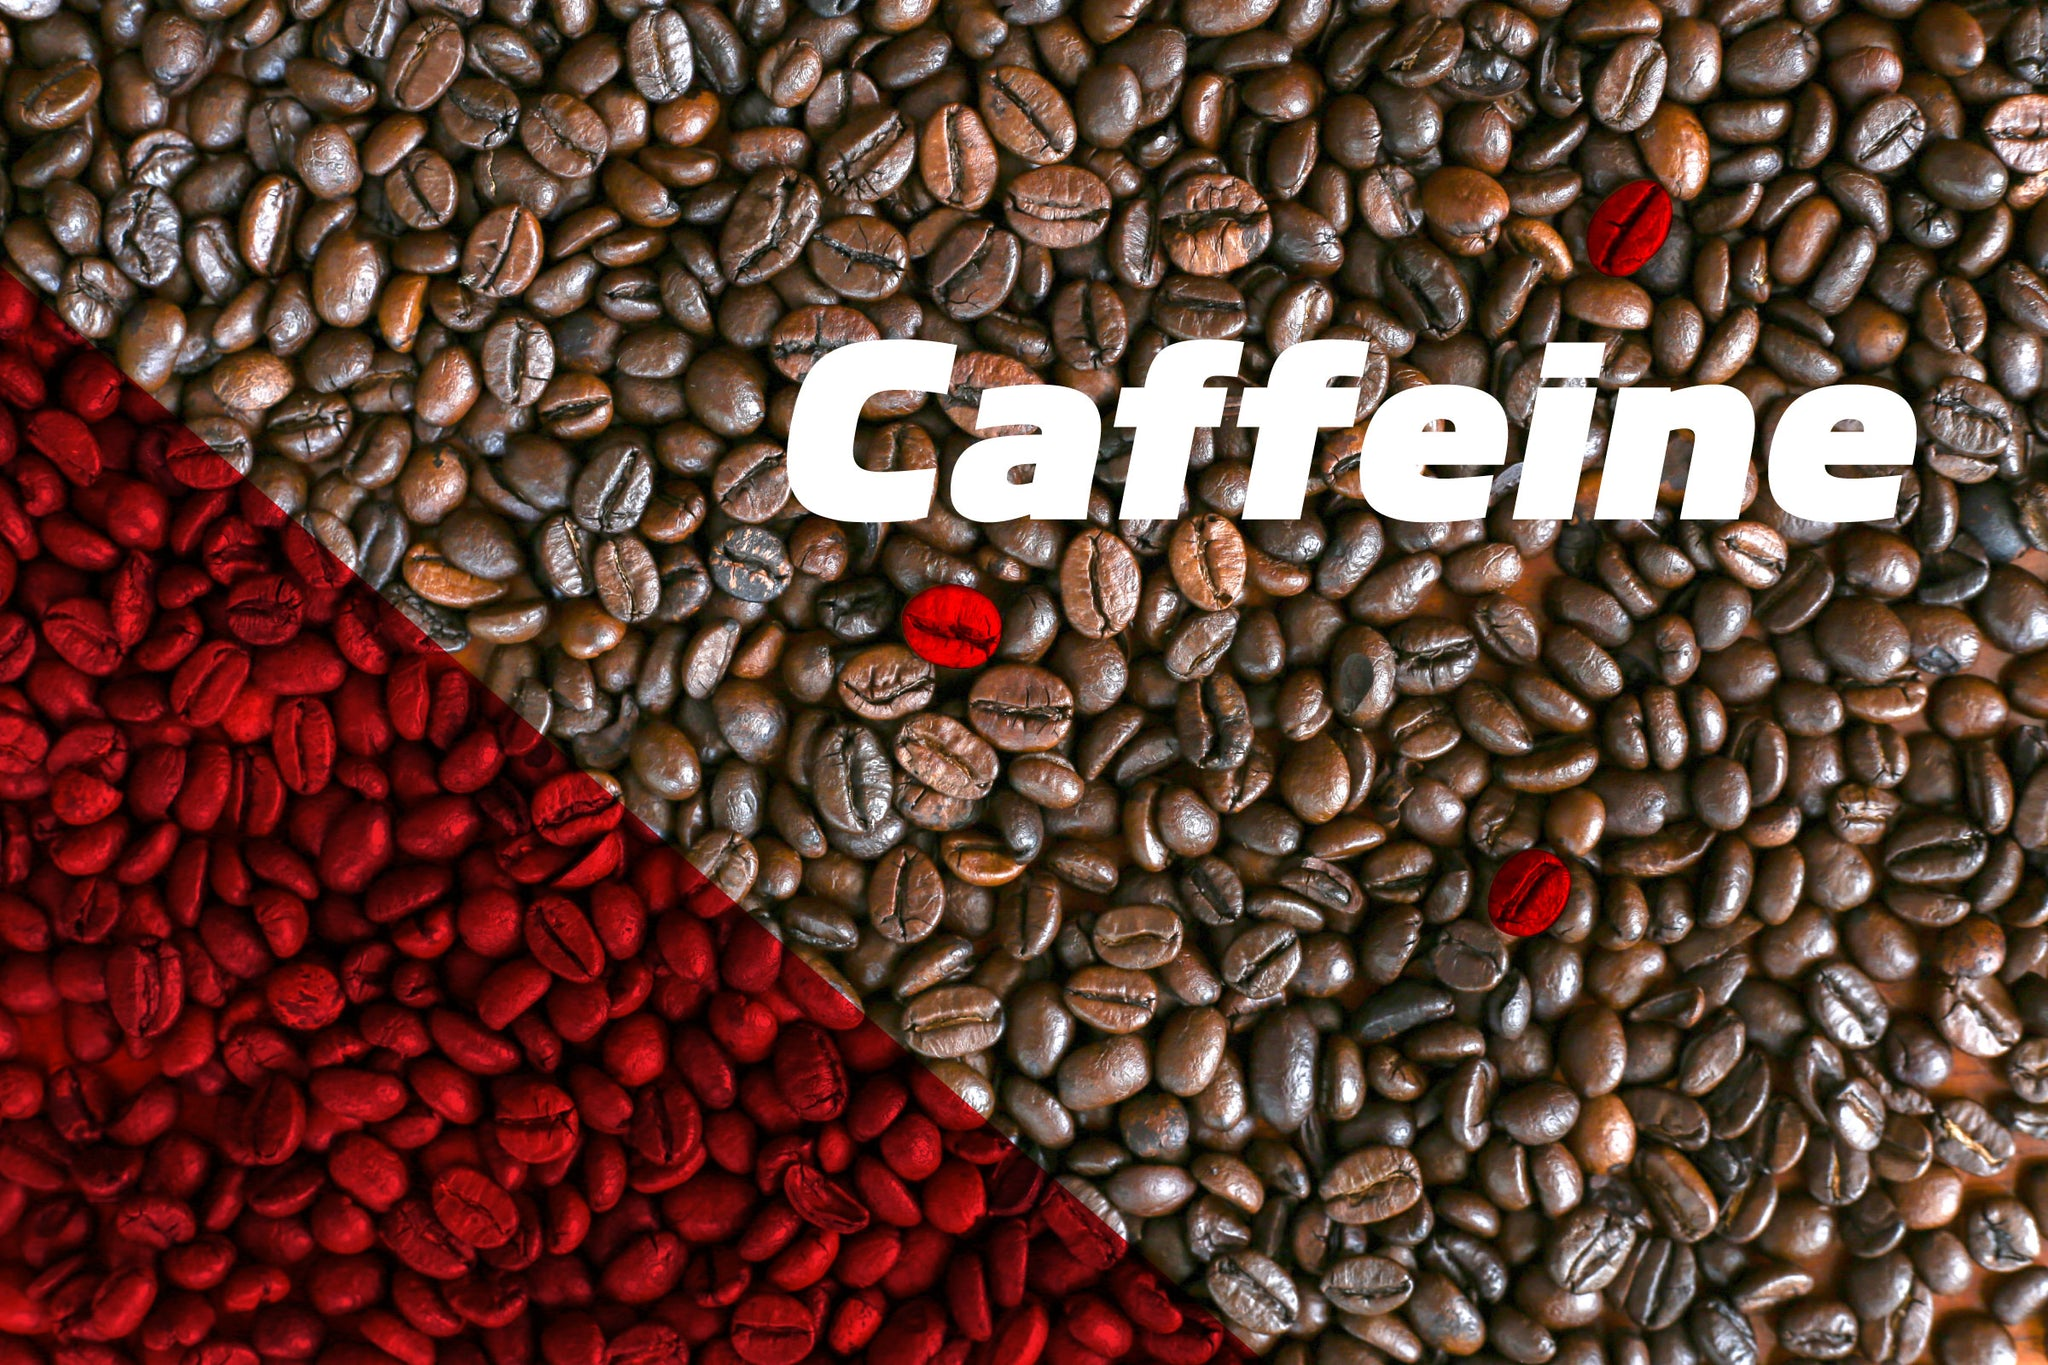 Can Caffeine Improve Your Performance?